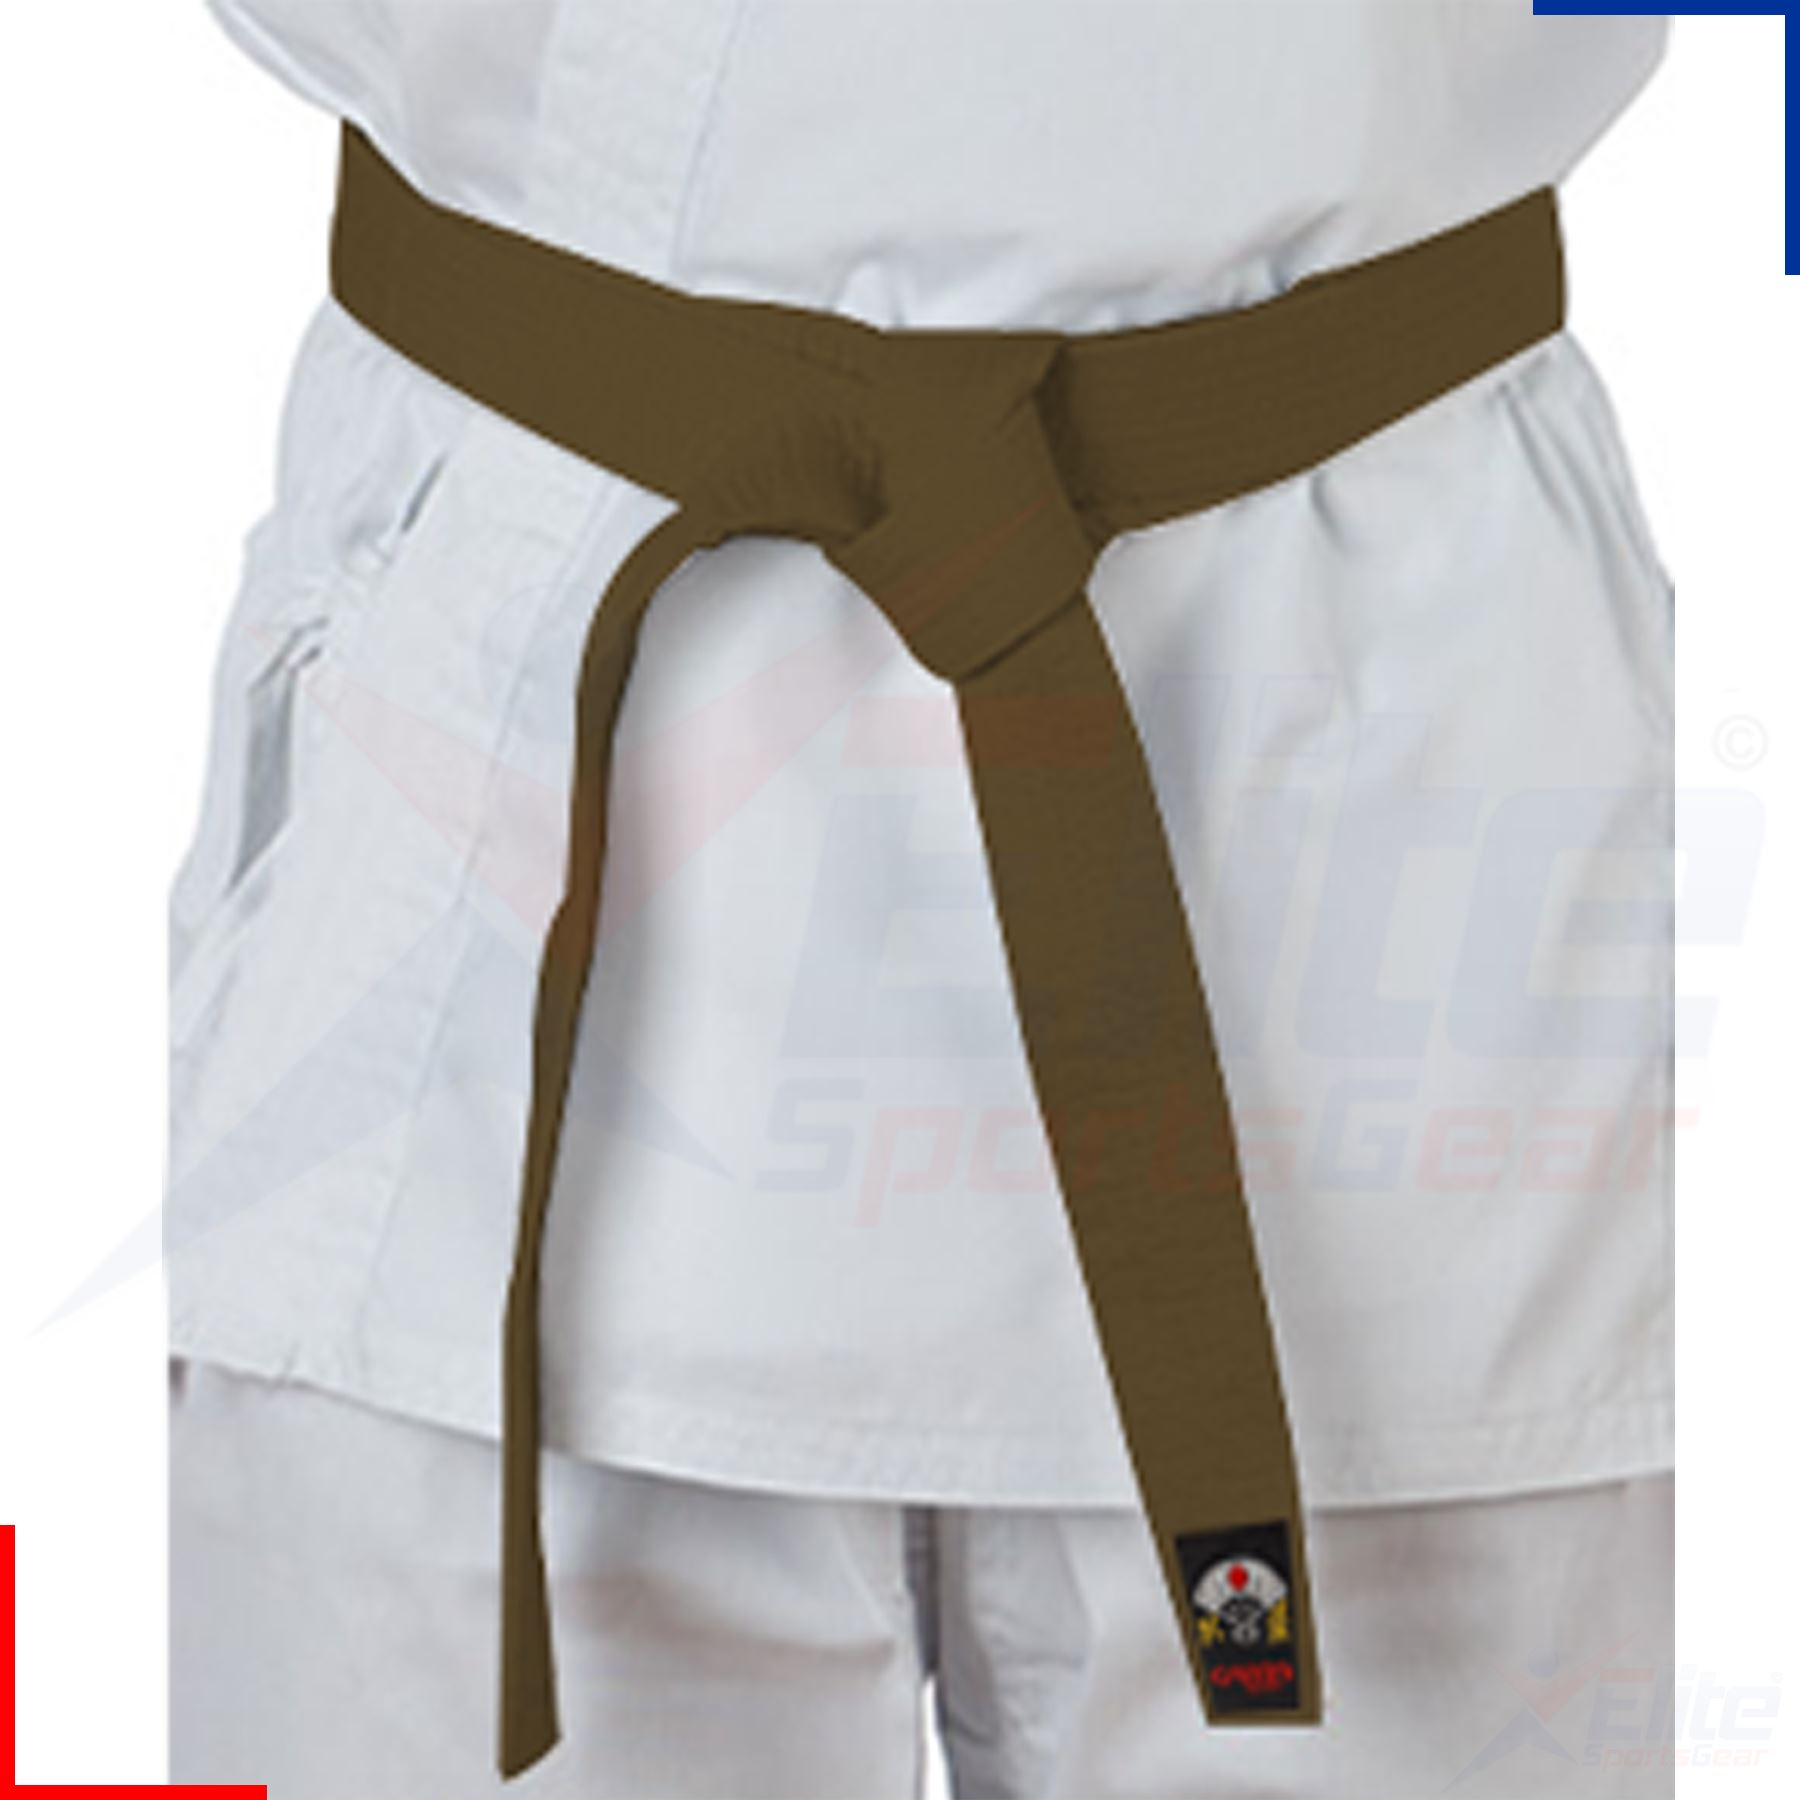 carta martial arts belt karate judo taekwondo kickboxing